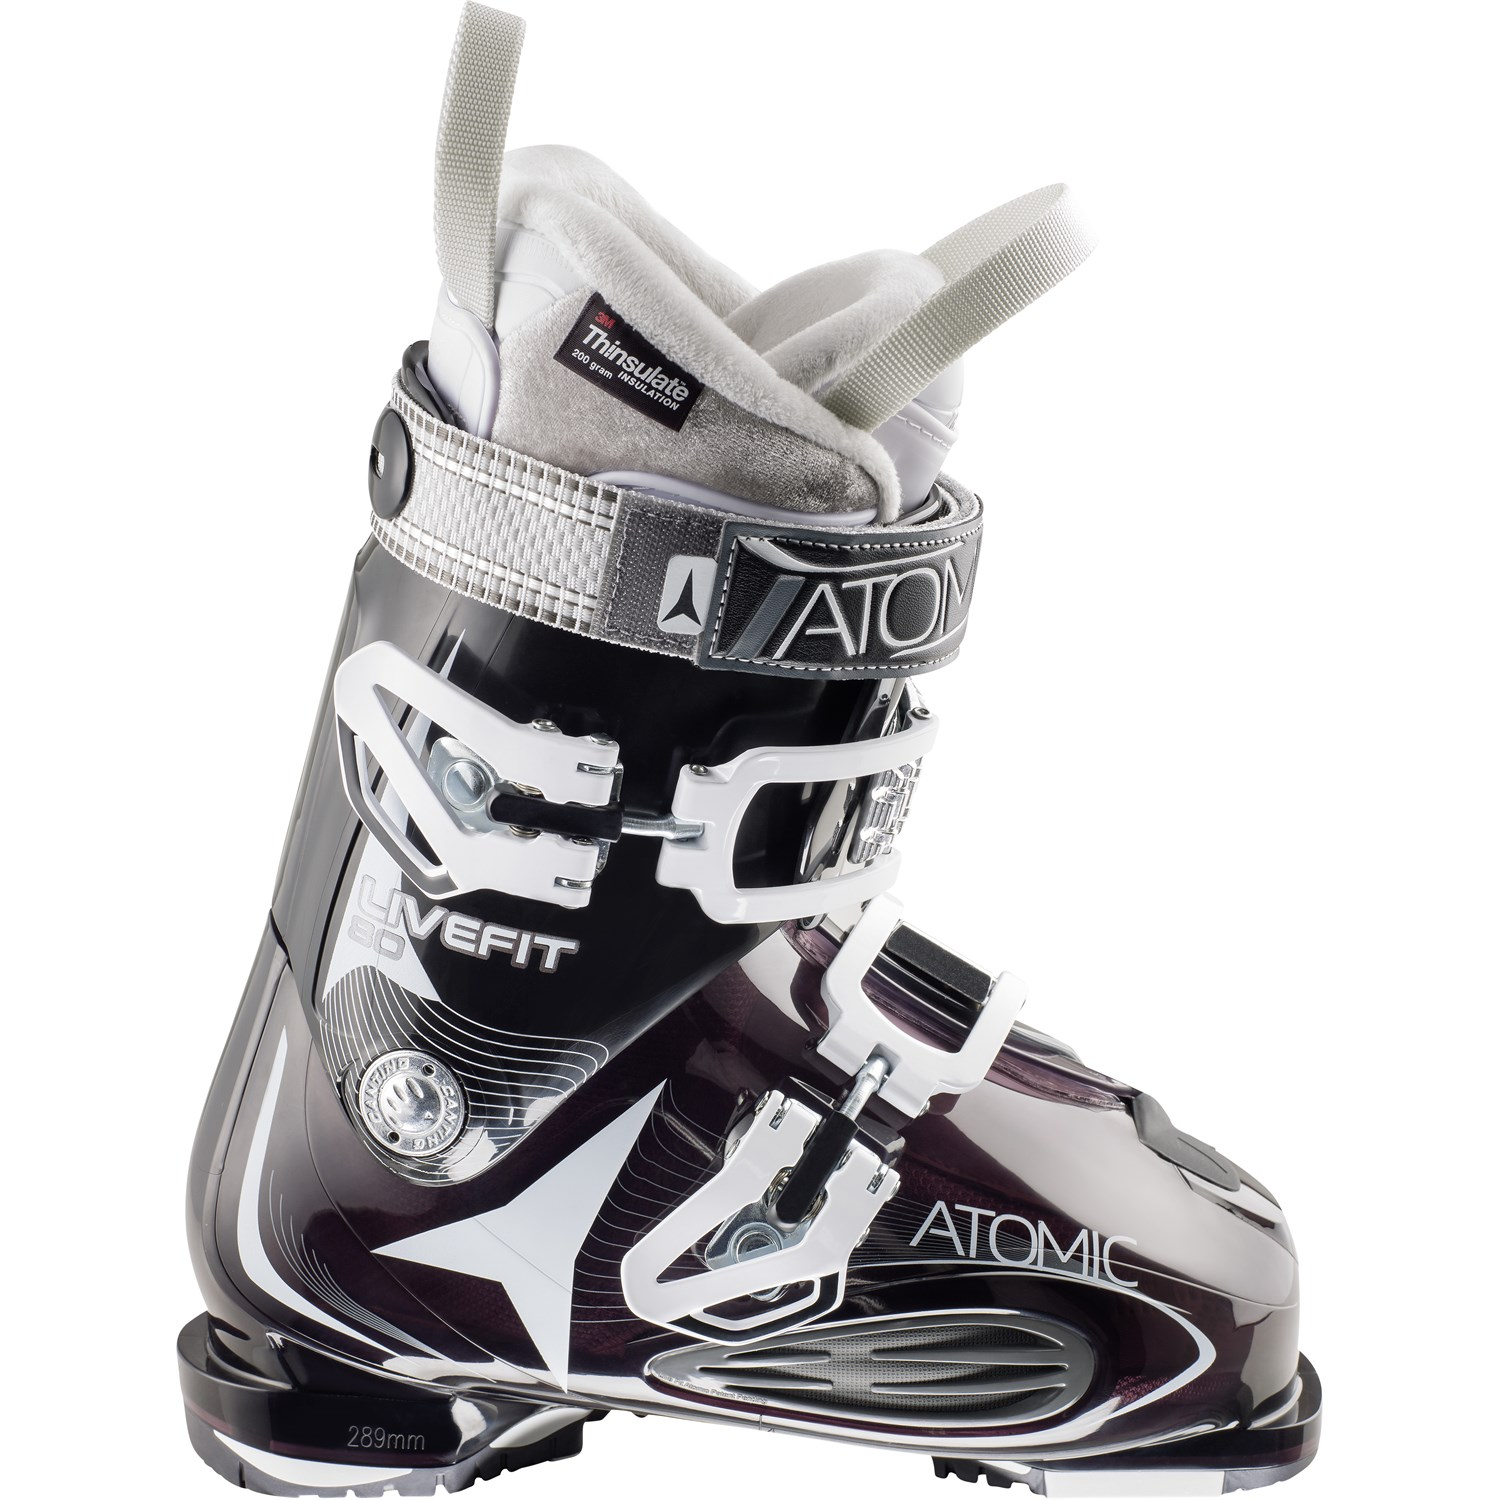 ski mountain boot mountaineering boots expedition dynafit tlt comforter comfortable products